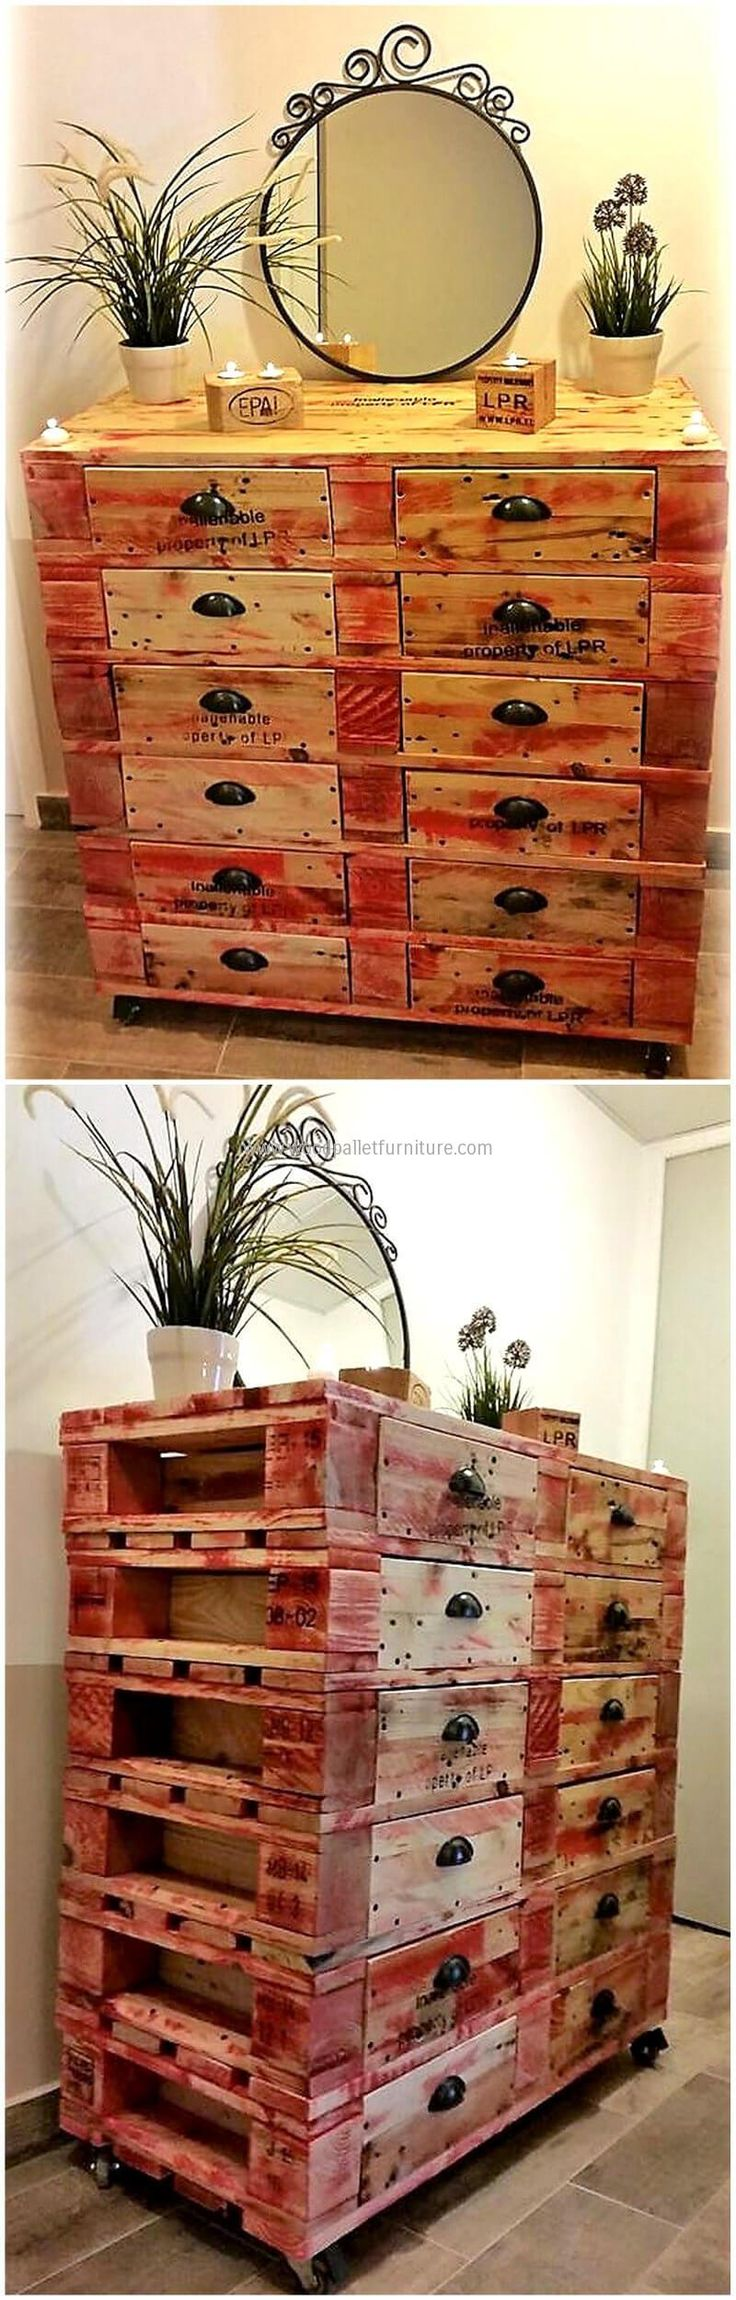 Make the first impression of your house to be great by decorating your entrance with a delicate entrance table. Rustic and classy reformed entrance table ads up to the beauty of your house. The mirror placed above it is giving it a royal and pretty look. The drawers provide enough space to keep your necessary keys or other items.